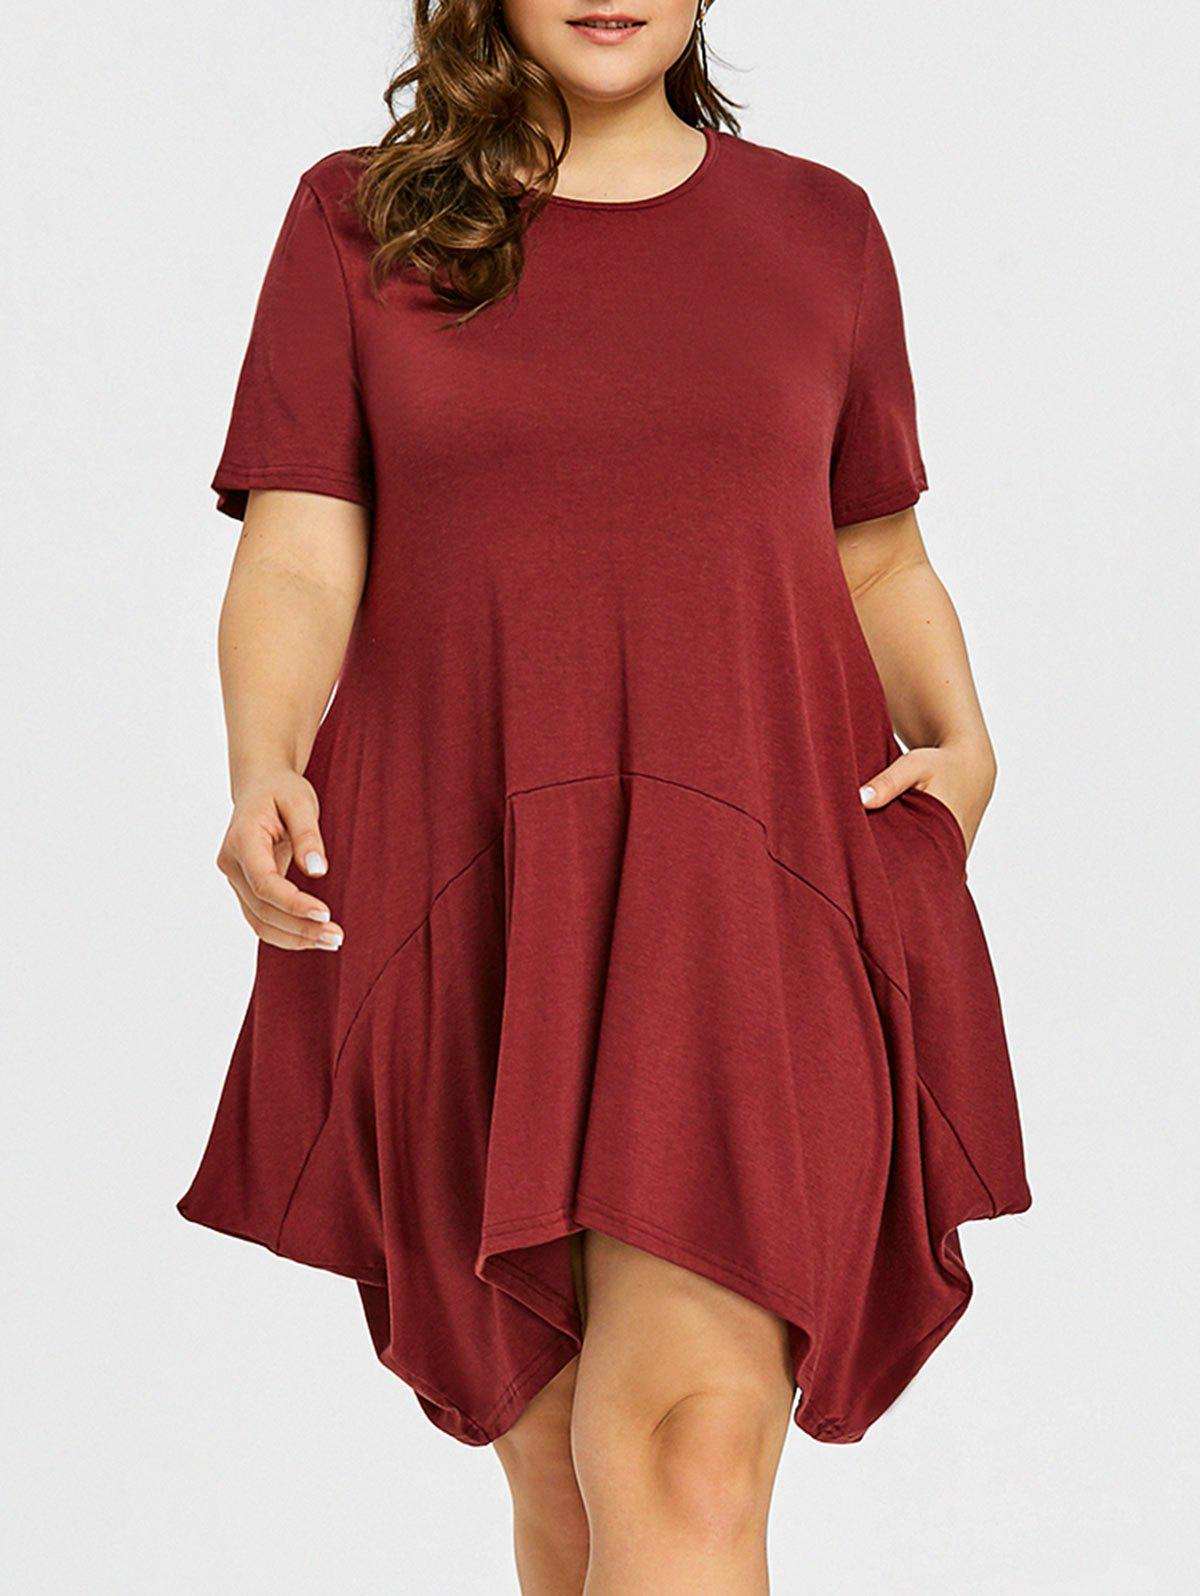 Fashion Plus Size T-shirt Swing Dress with Pocket